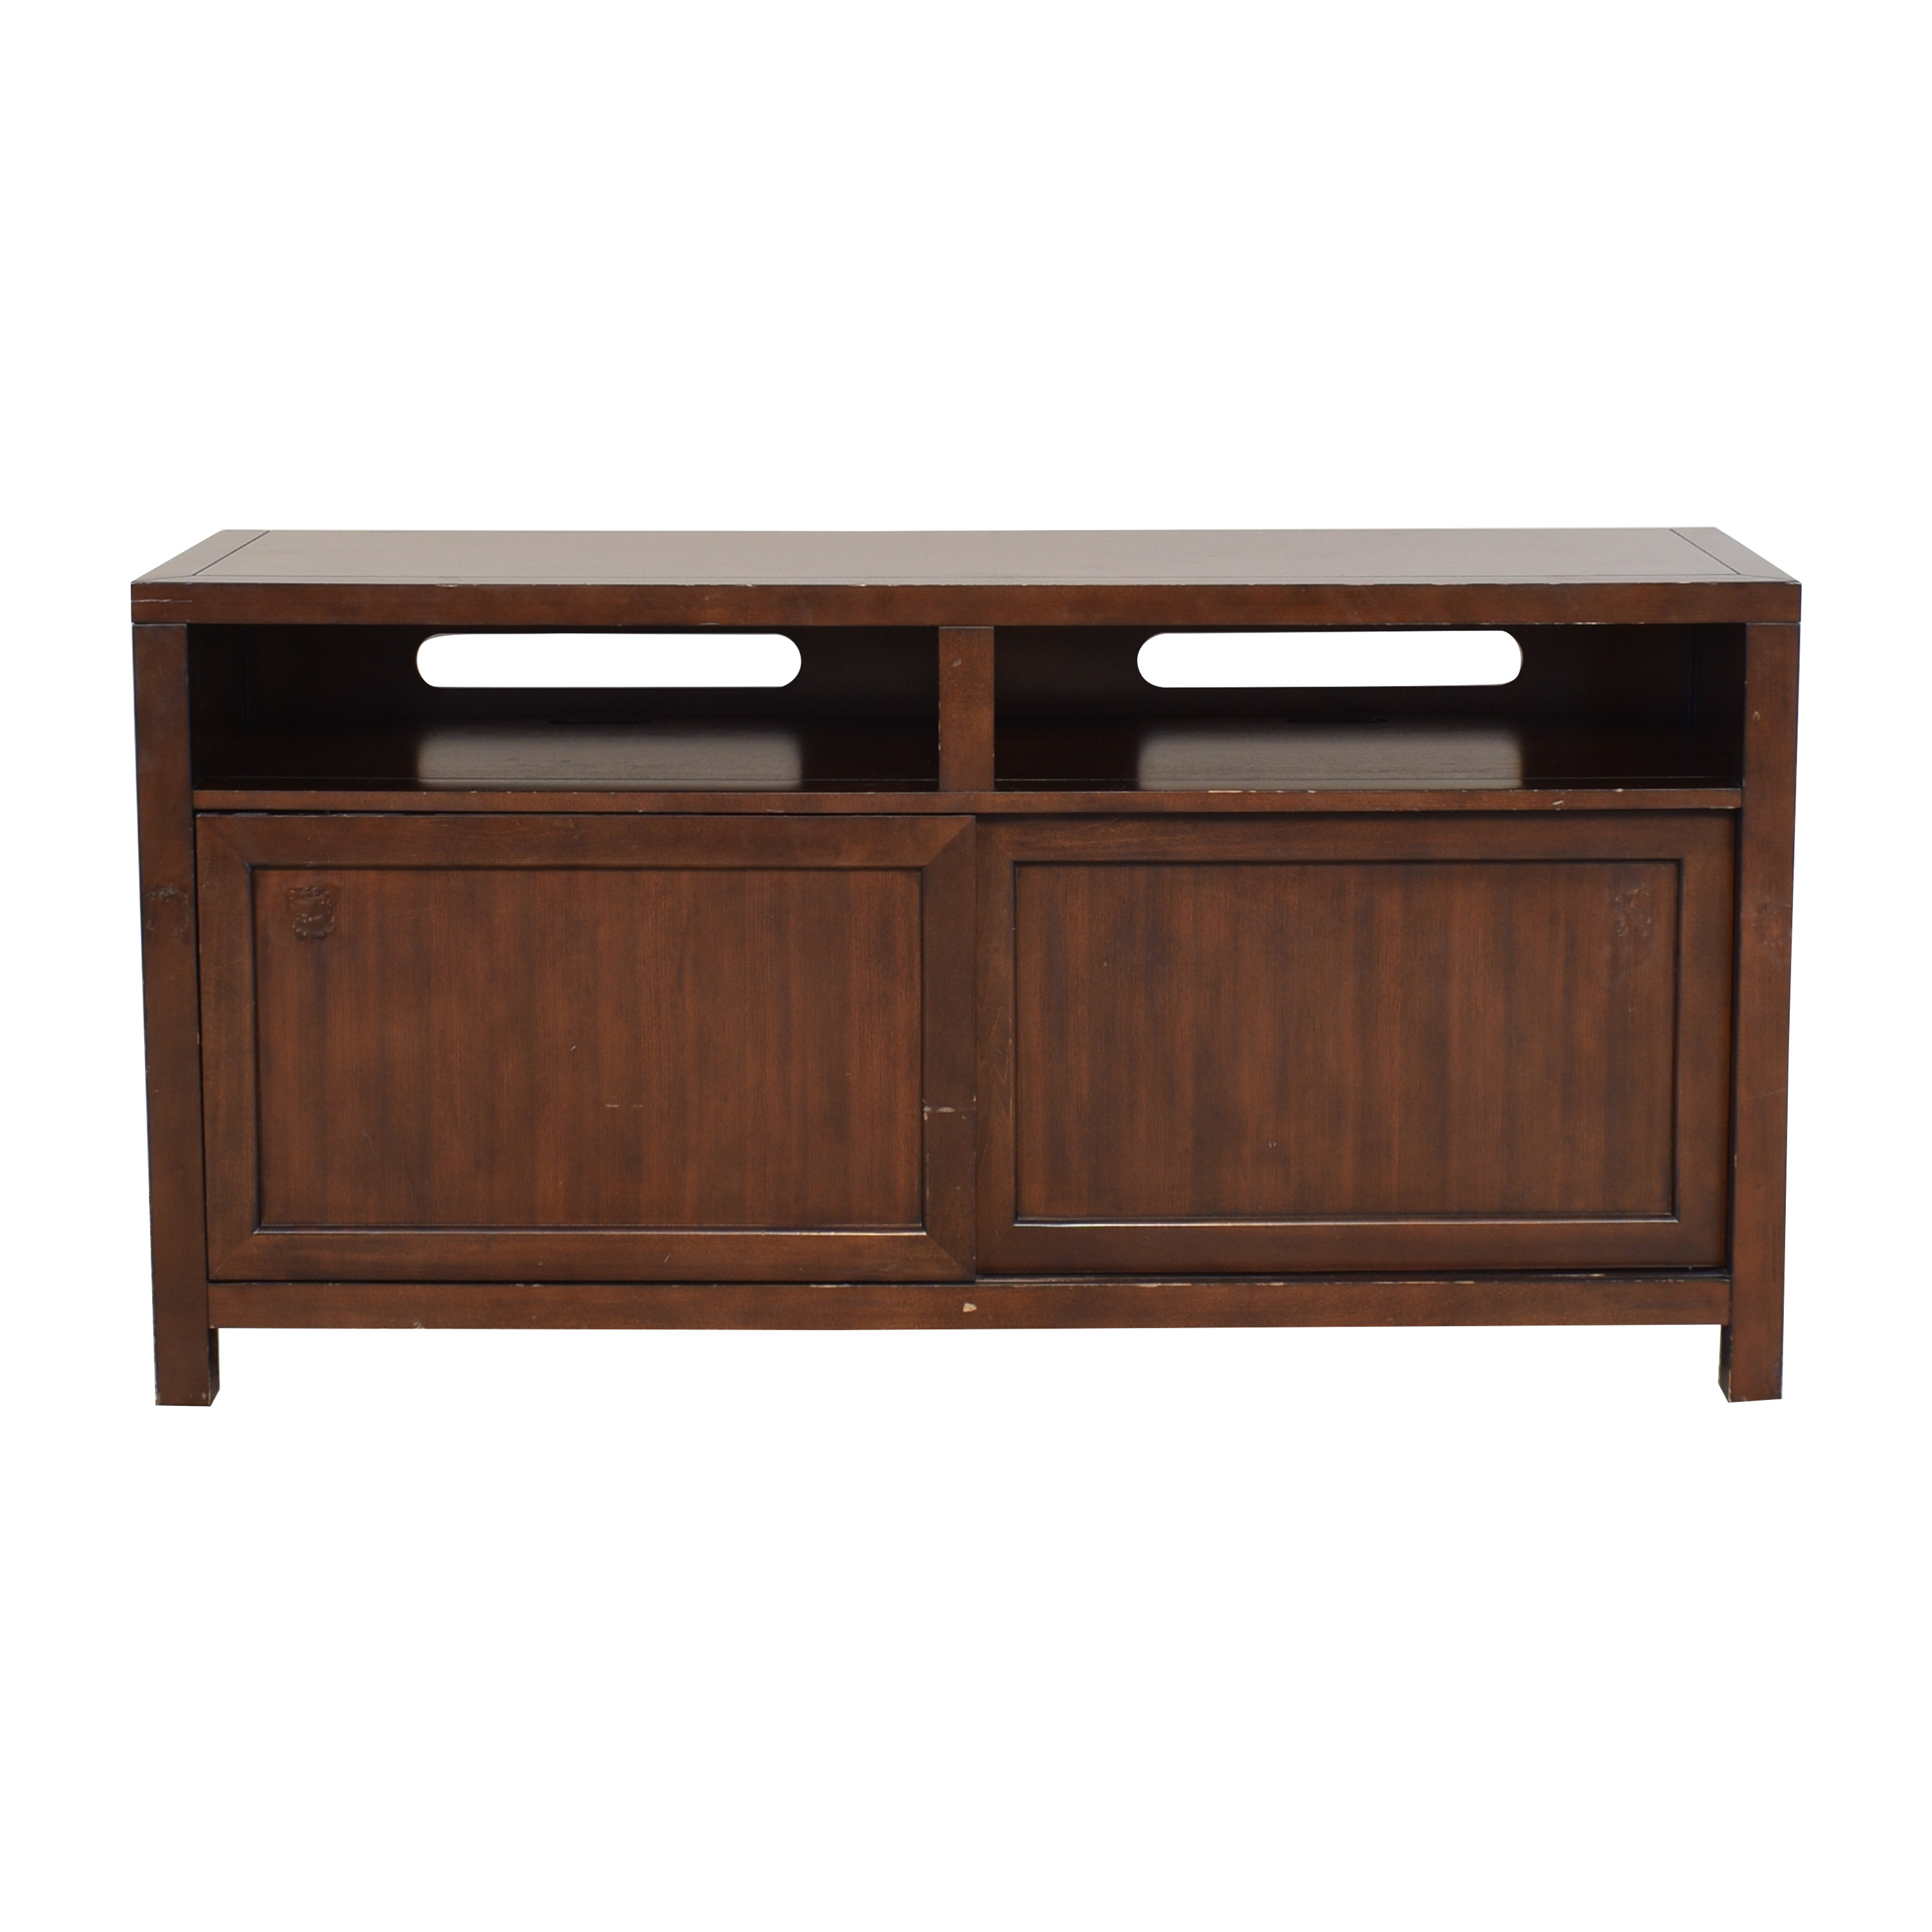 Crate & Barrel Crate & Barrel Tyler Media Console